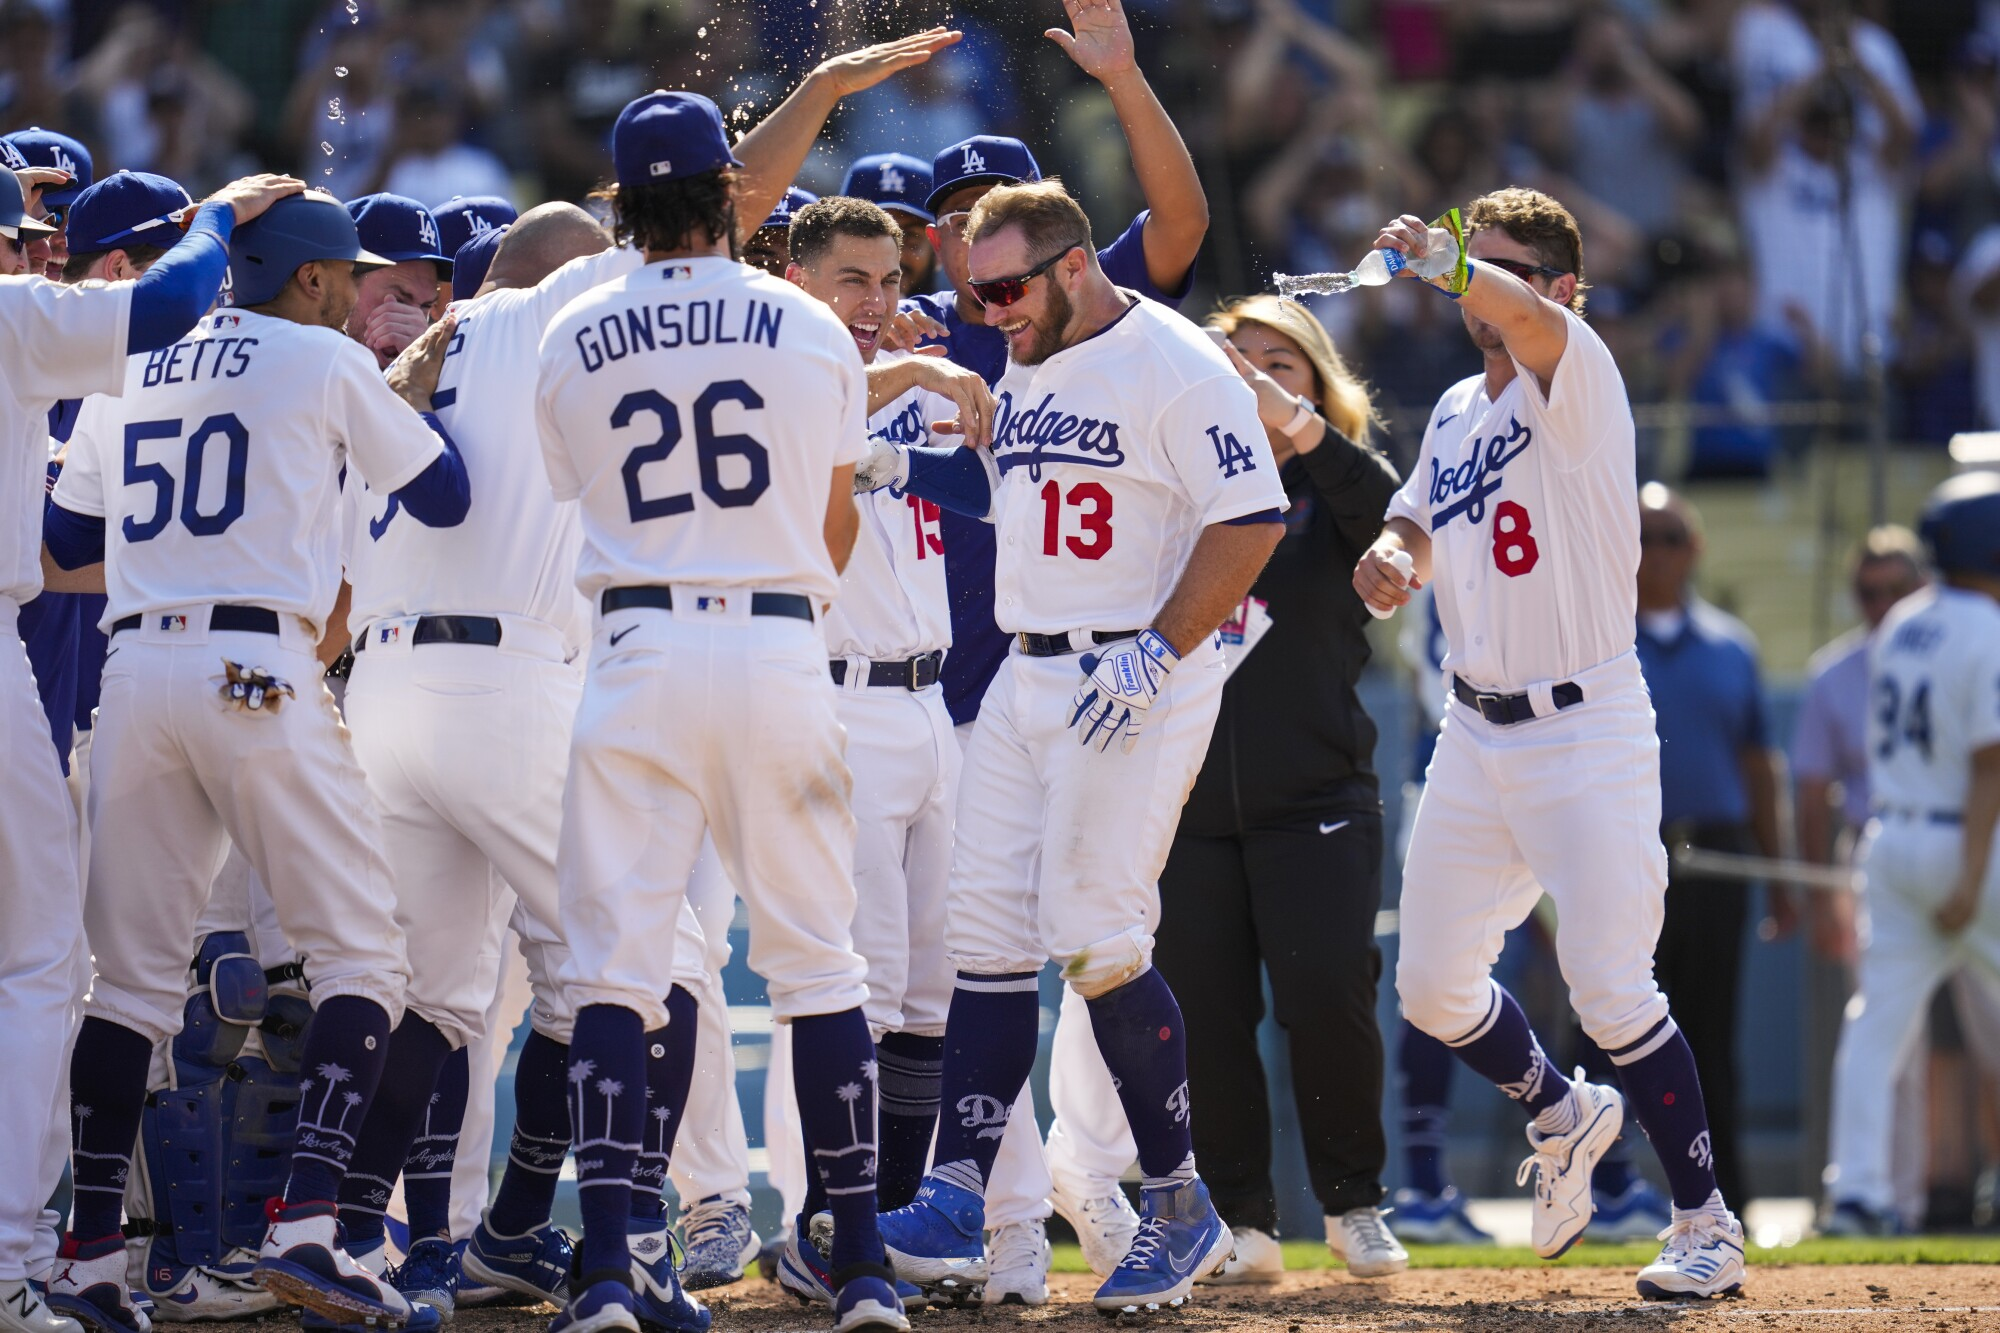 Max Muncy (13) celebrates with his Dodgers teammates after hitting a walk-off home run in a 7-4 victory.